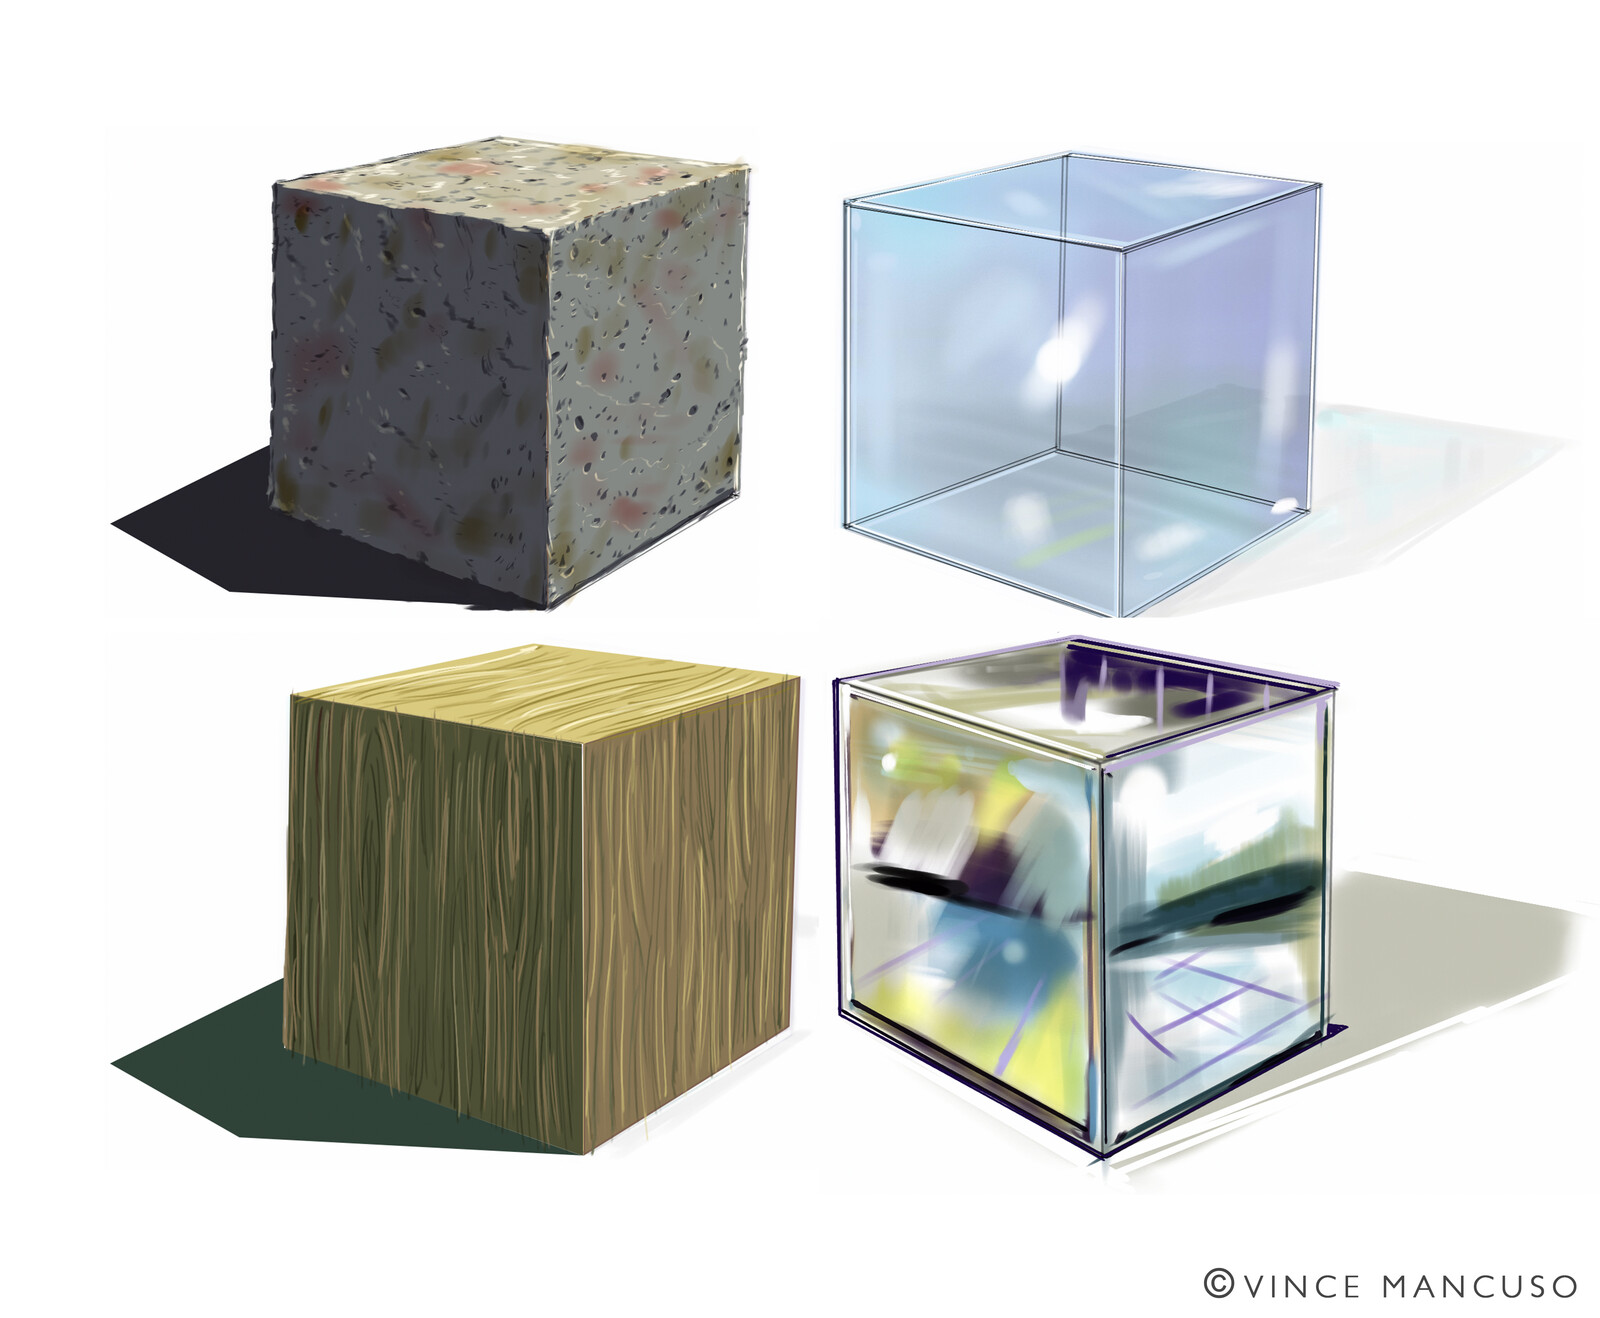 Project 9: 4 cubes in chrome, glass, stone and wood.